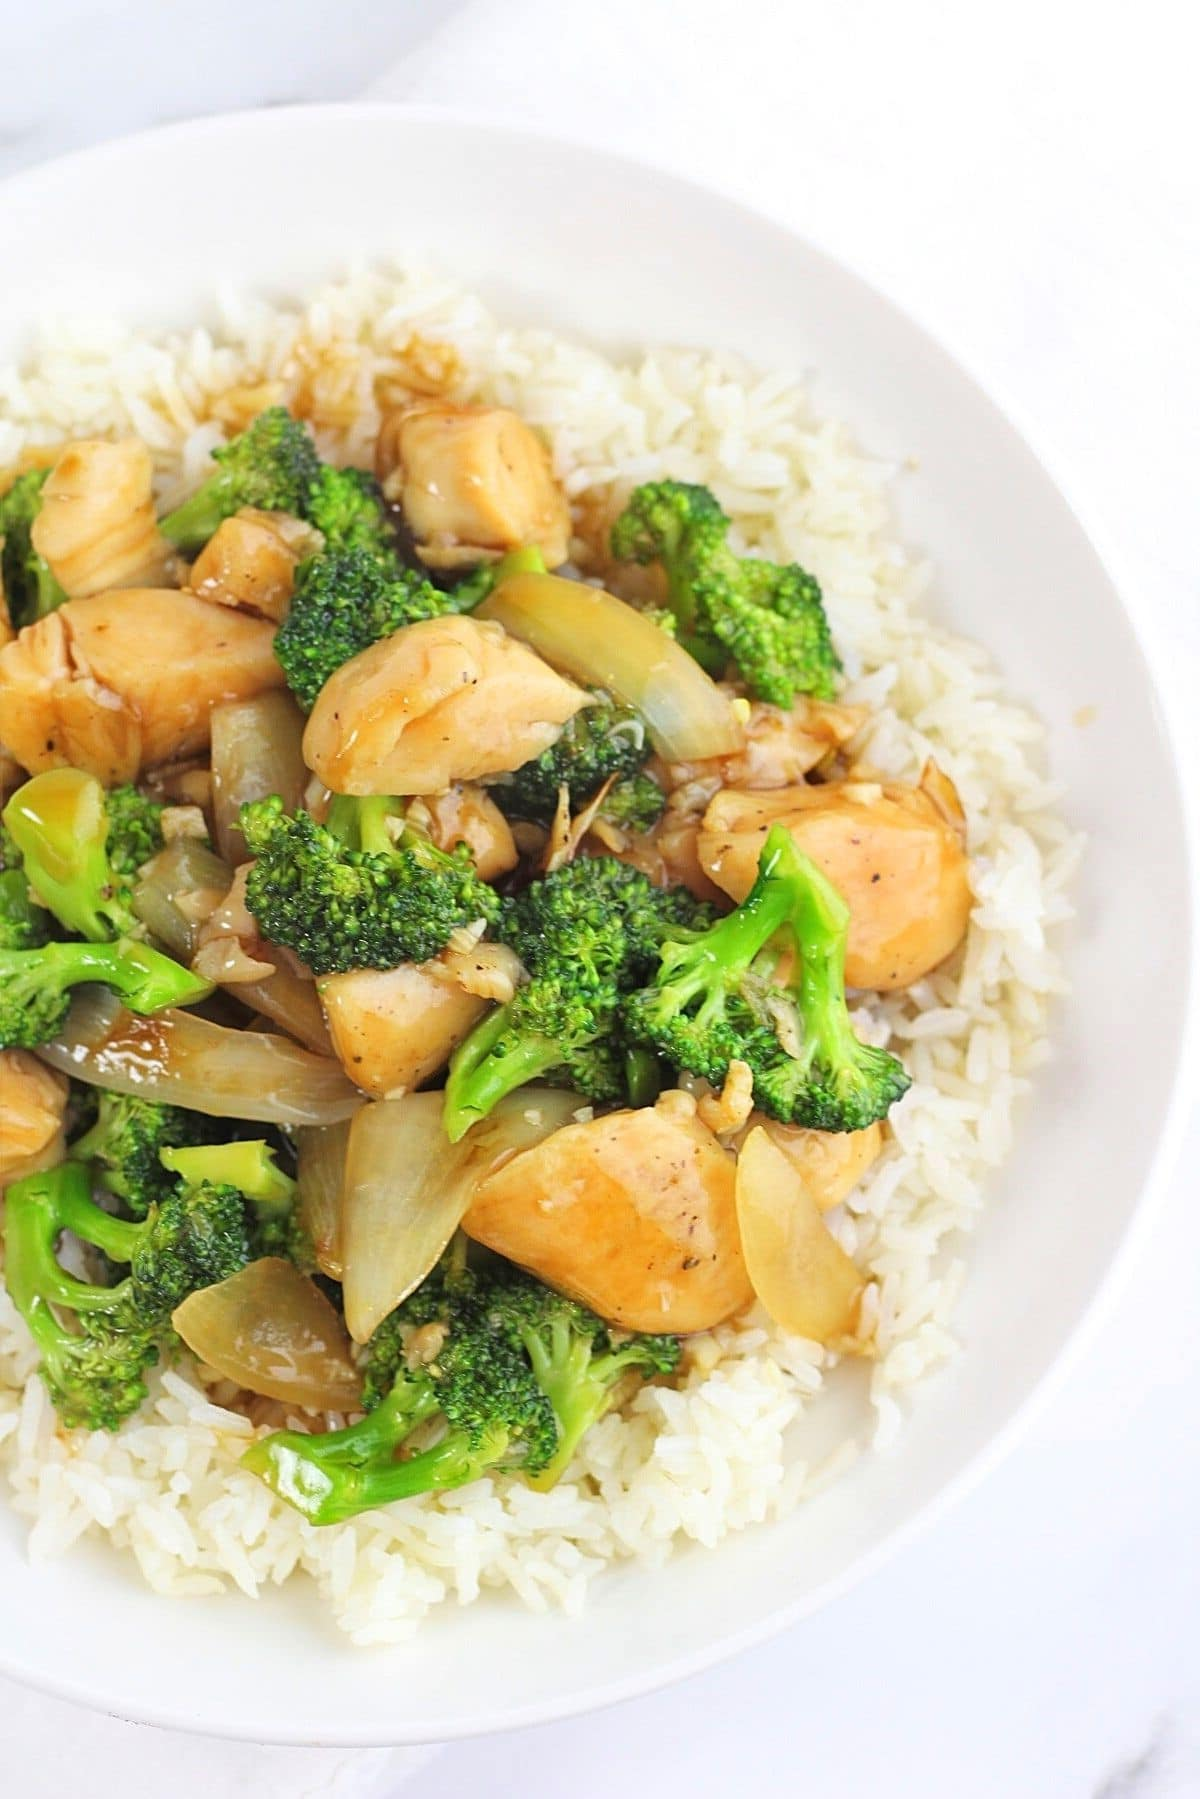 chinese chicken and broccoli stir-fry over white rice in a bowl